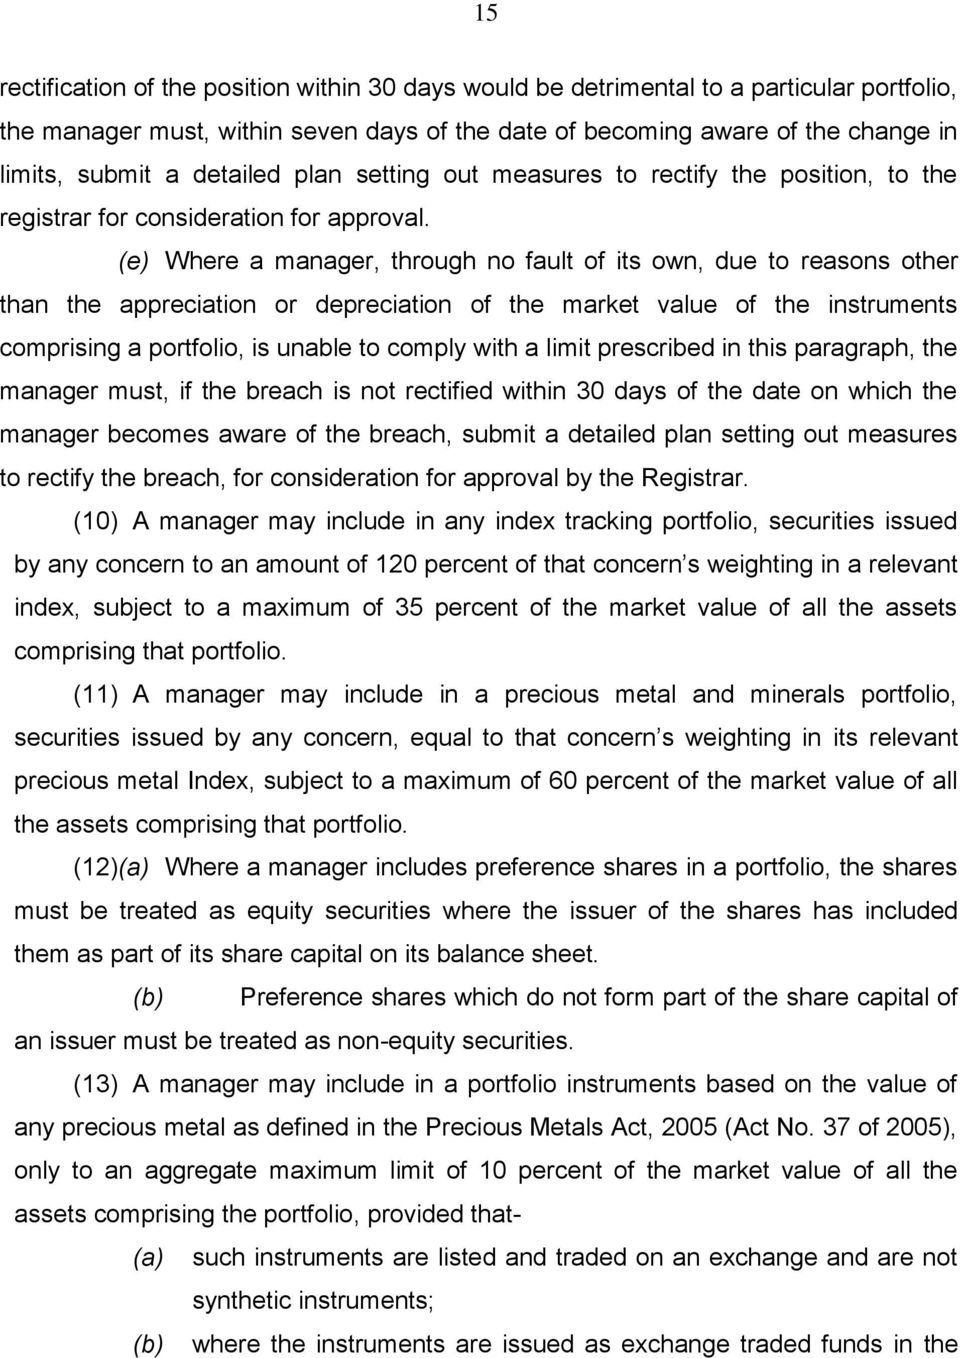 (e) Where a manager, through no fault of its own, due to reasons other than the appreciation or depreciation of the market value of the instruments comprising a portfolio, is unable to comply with a